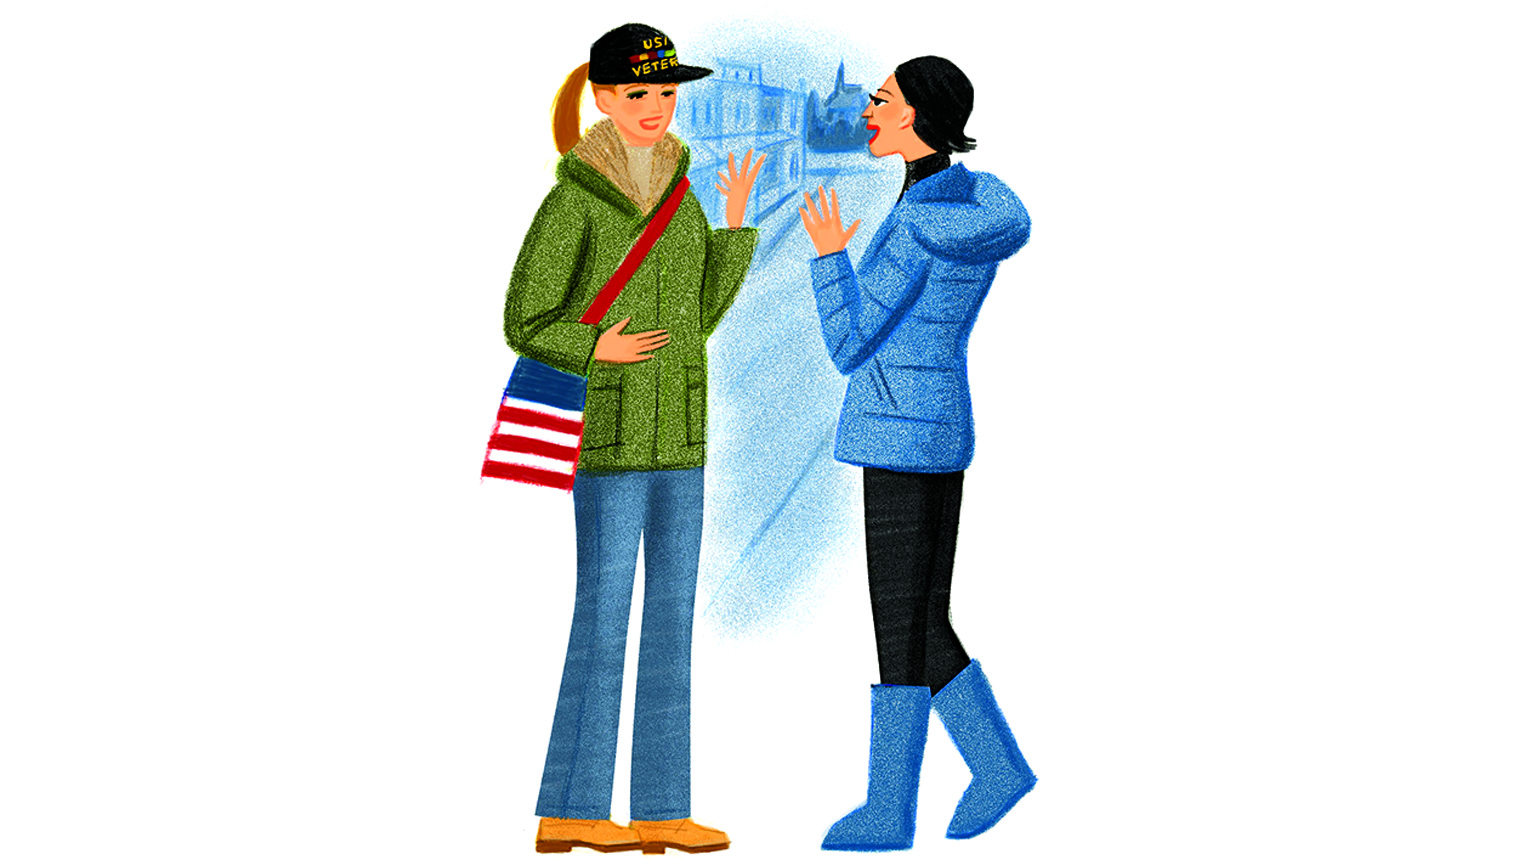 A woman expresses herself in conversation to a welcoming veteran in the outdoors.